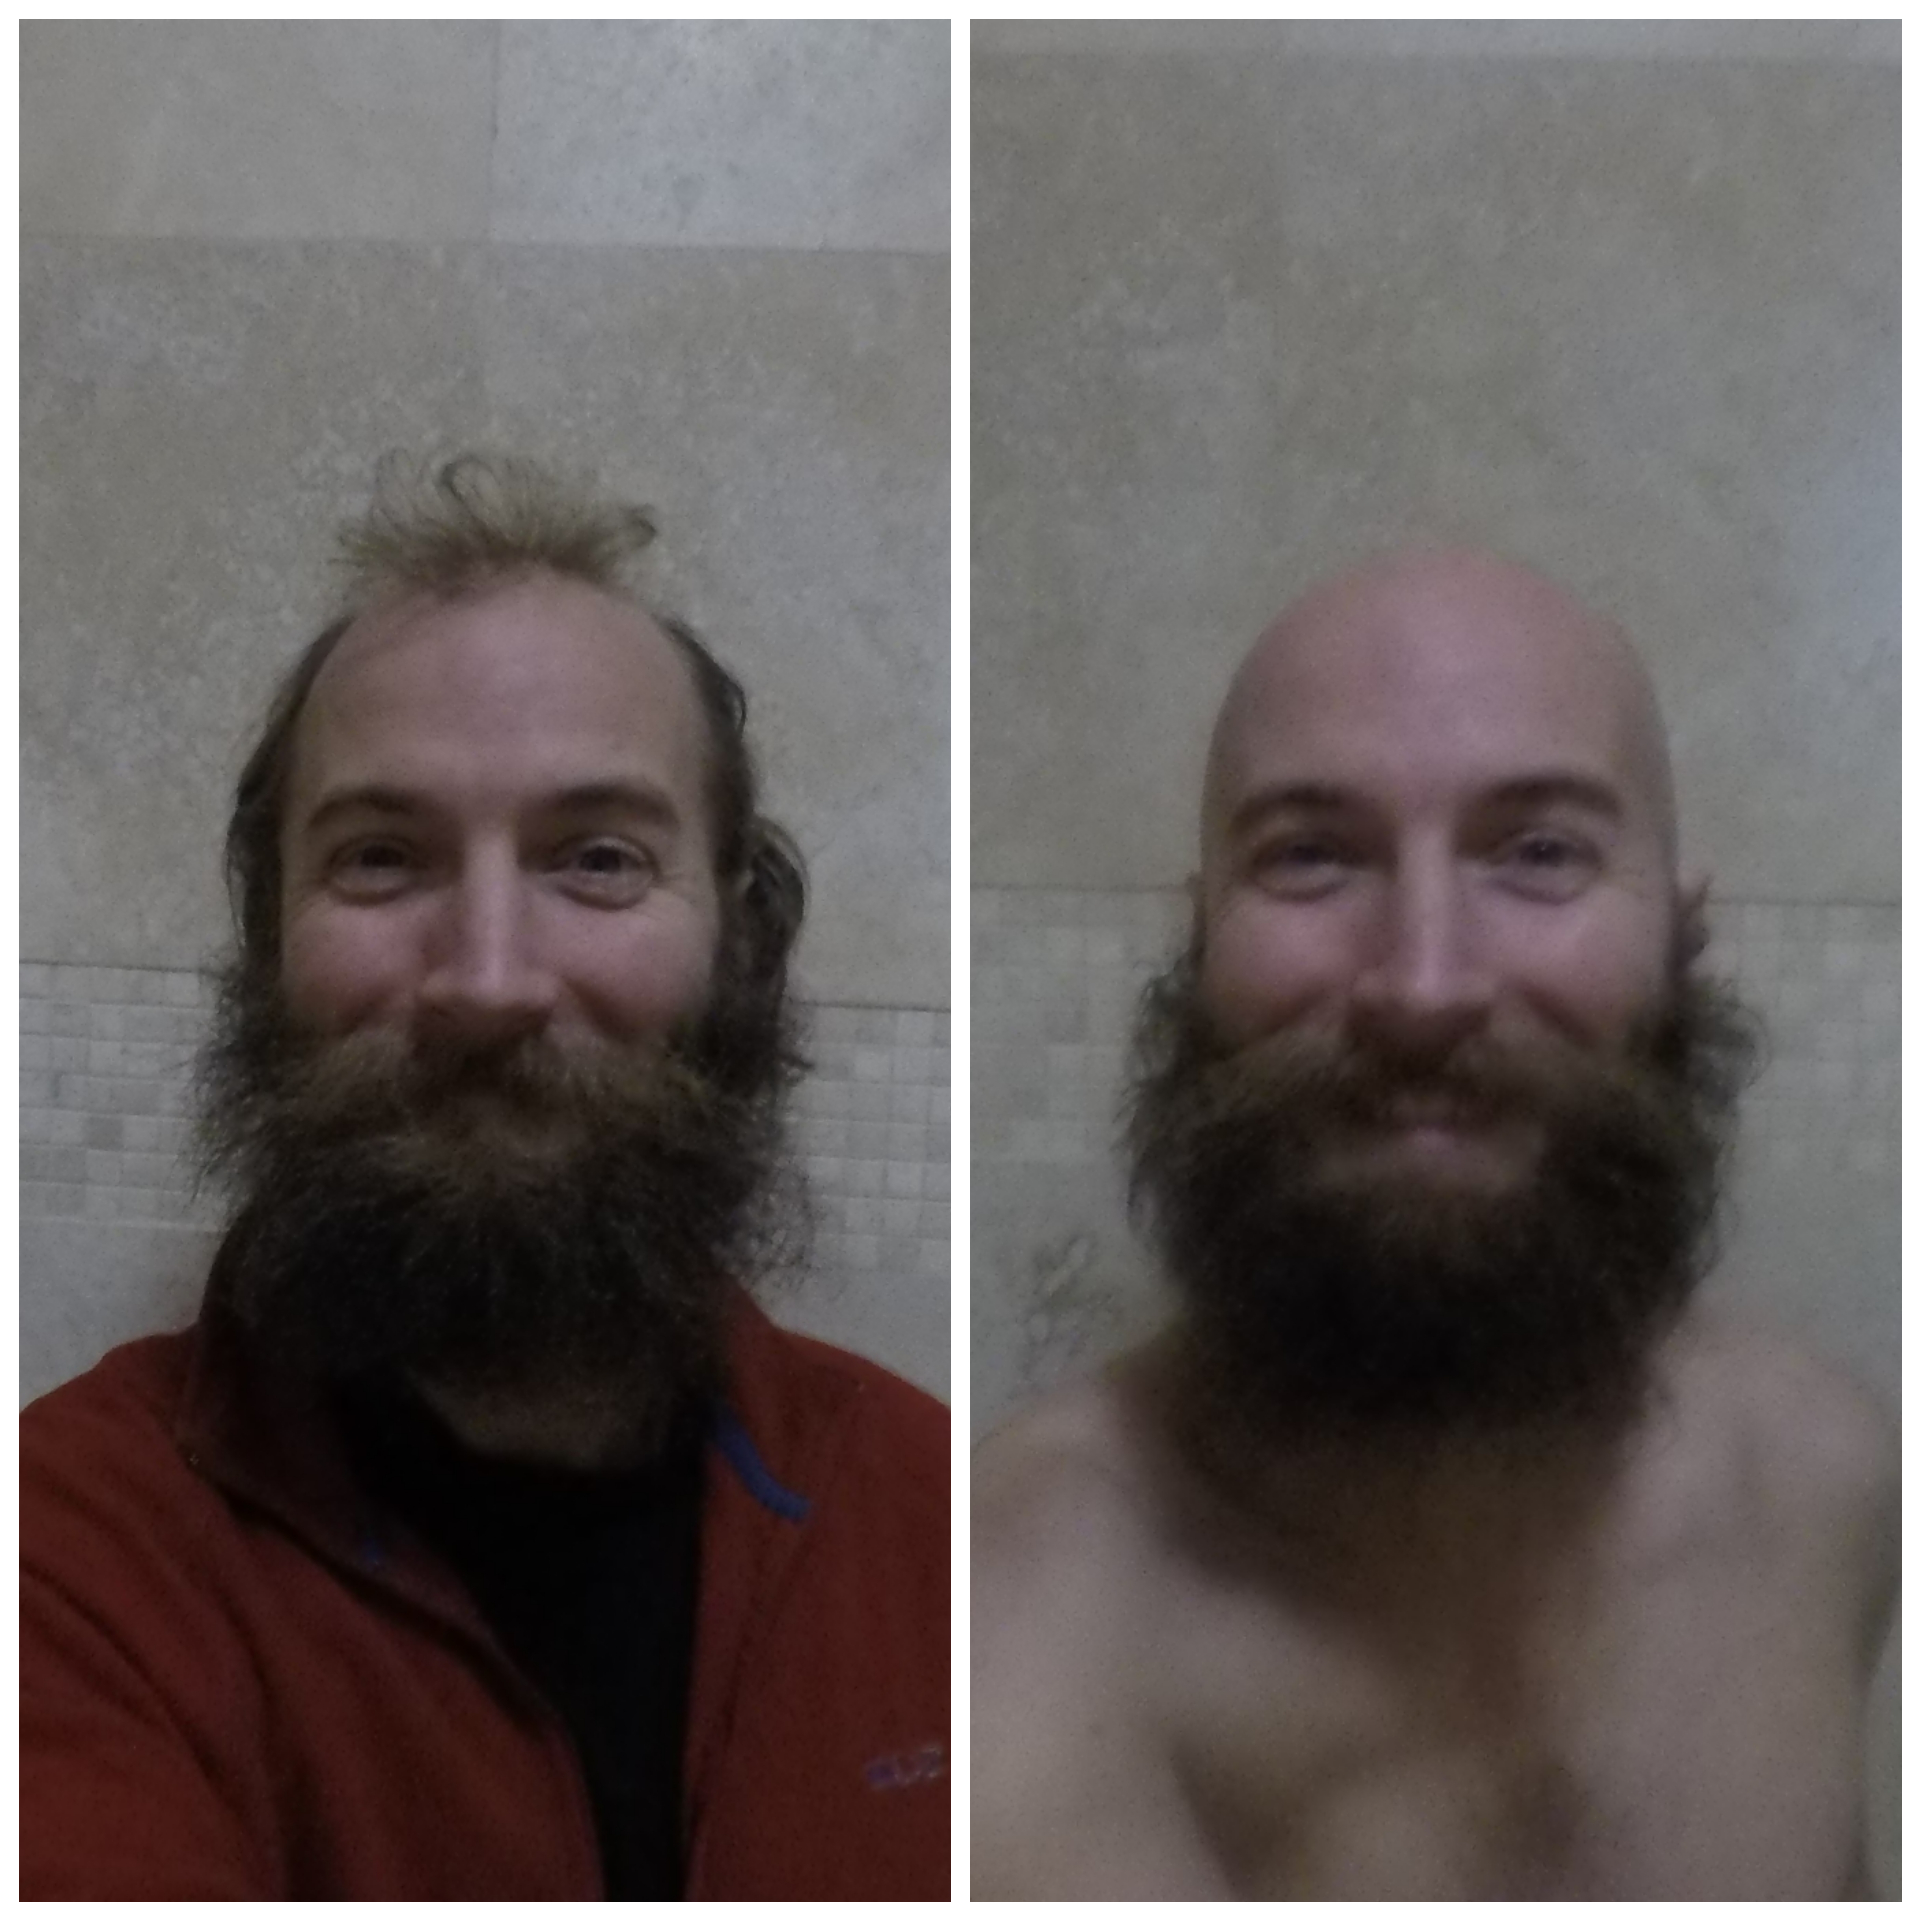 Before and after with scissors, single-blade disposable razor and shampoo.